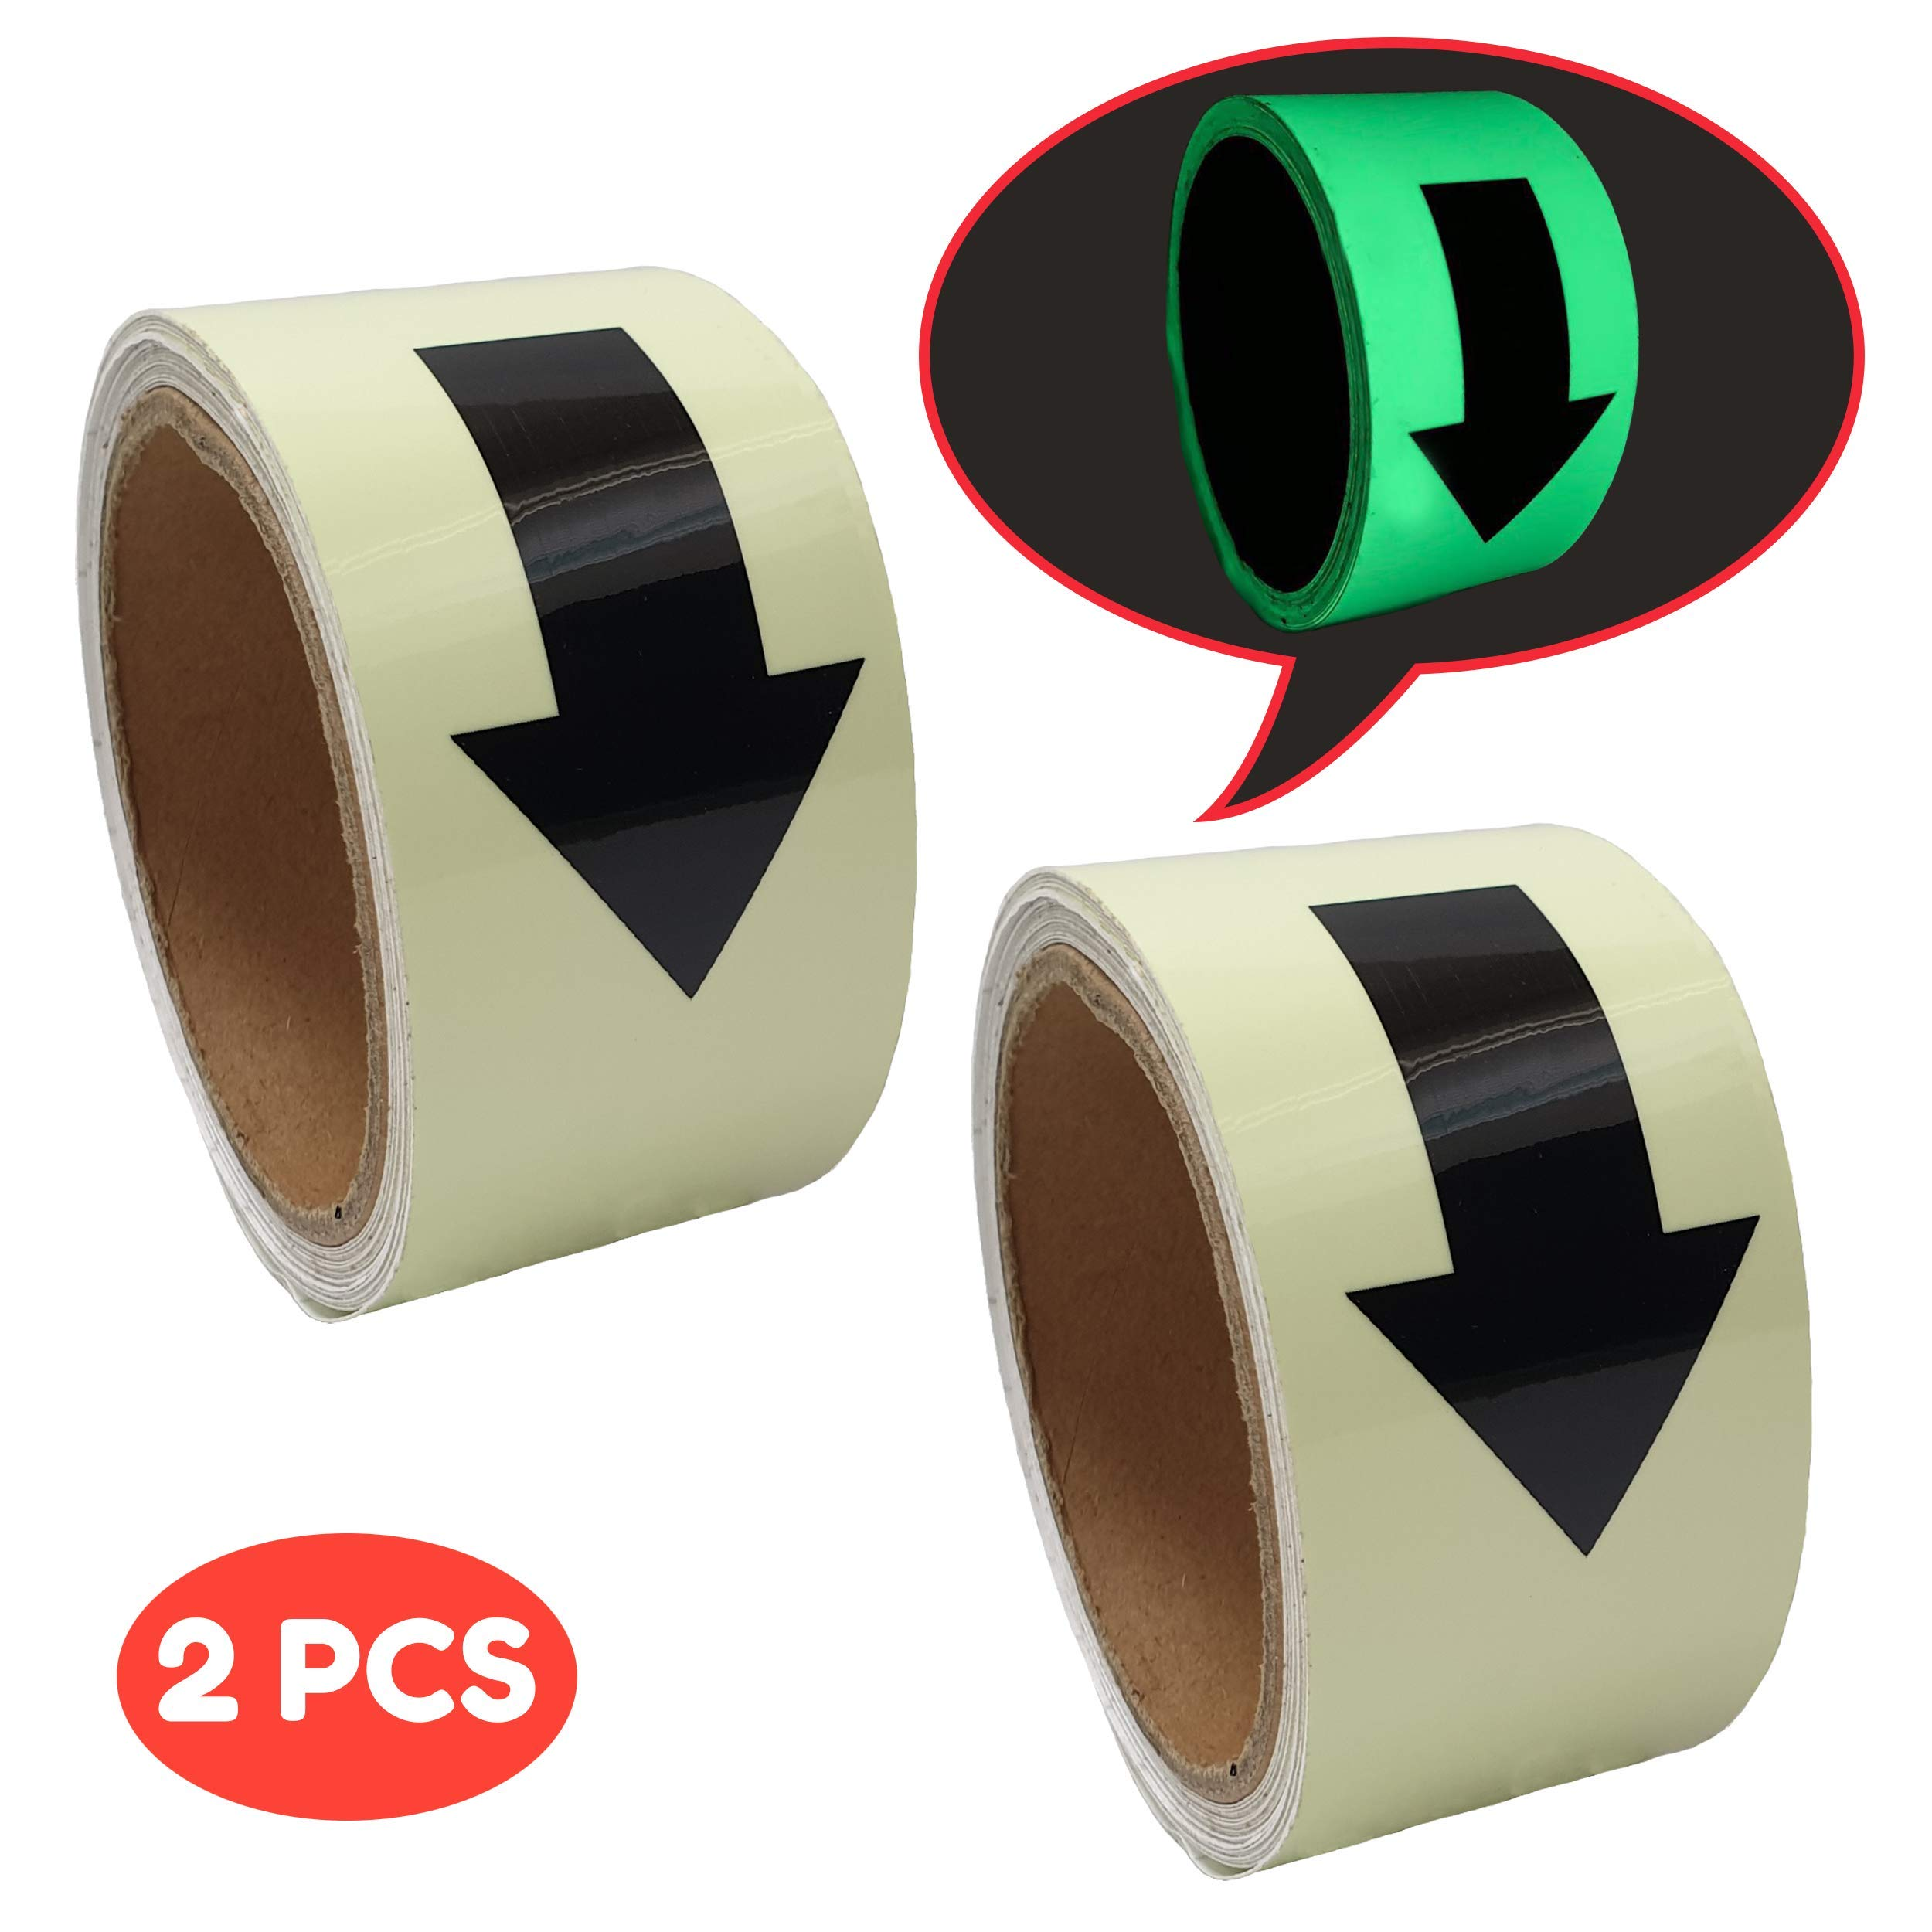 Macro Giant Luminous Directional Marking Tape, Arrow Mark, Set of 2, 1.96 inches wide, 16.4 feet Long, Adhesive, Glow In The Dark, Warning Emergency Tape